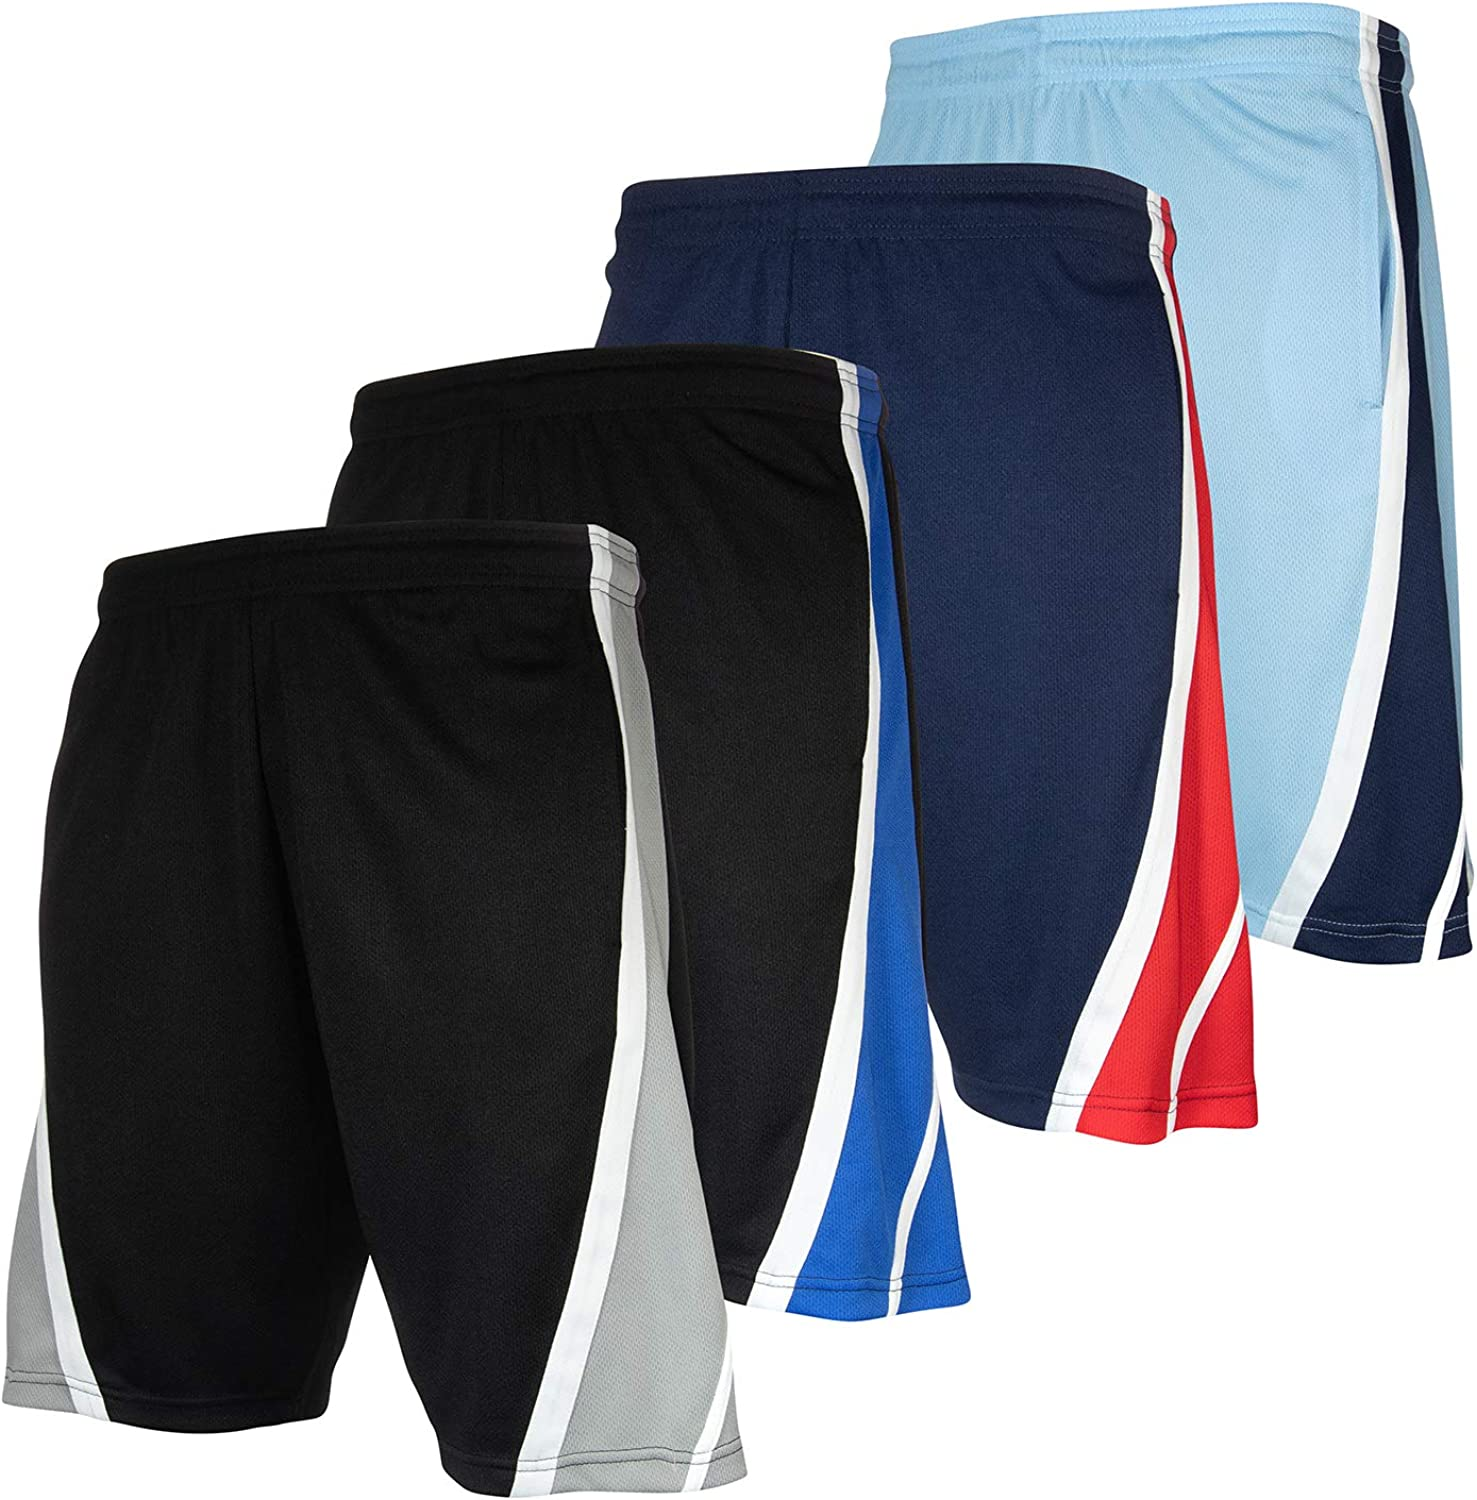 High Energy Long Basketball Shorts for Men, 4 Pack, Sports, Fitness, and Exercise, Athletic Performance